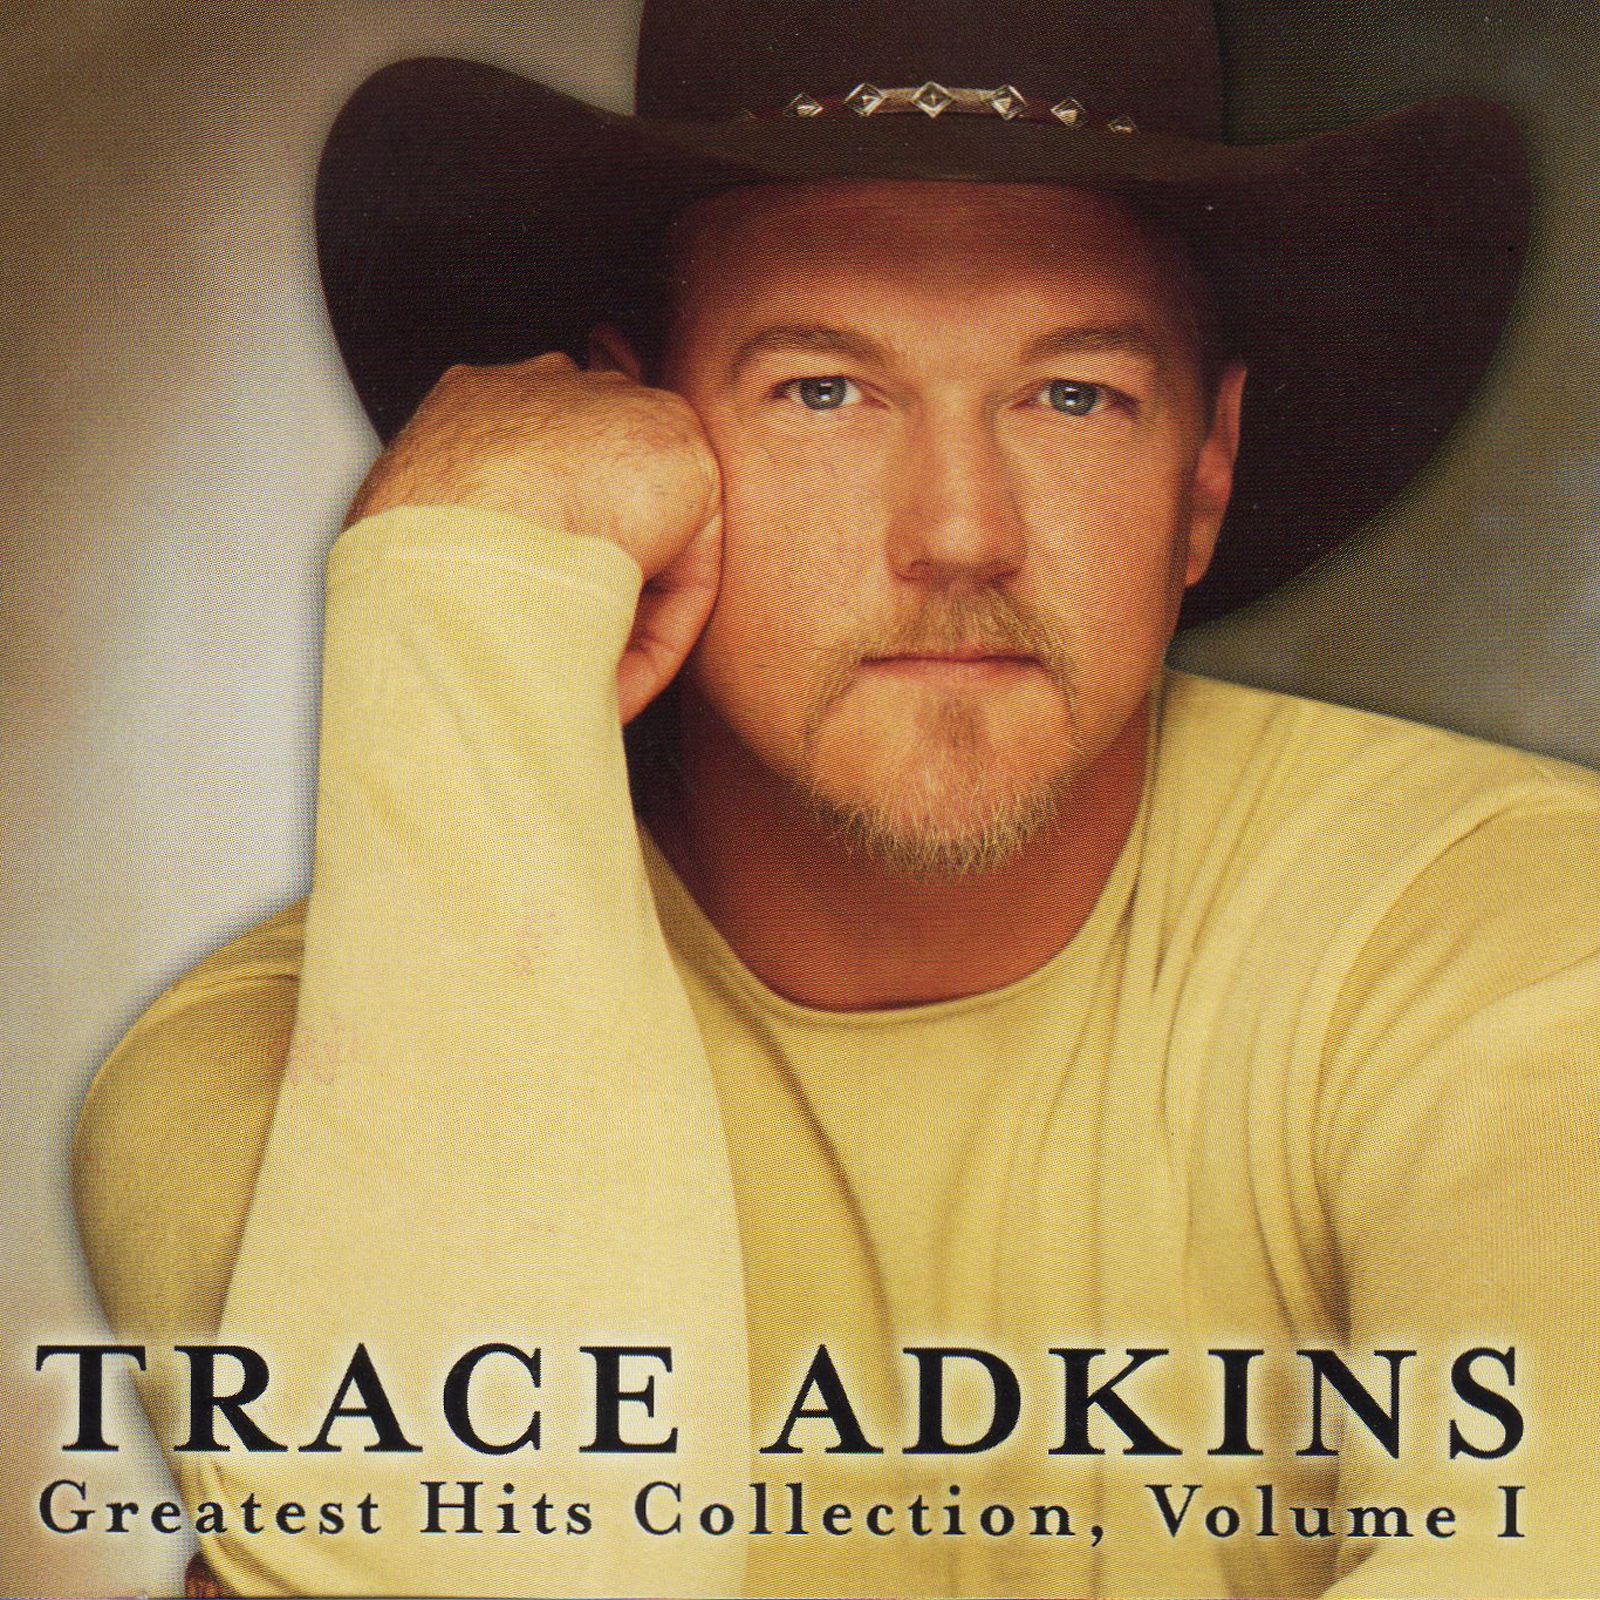 TRACE ADKINS Greatest Hits Collection Volume 1 CD